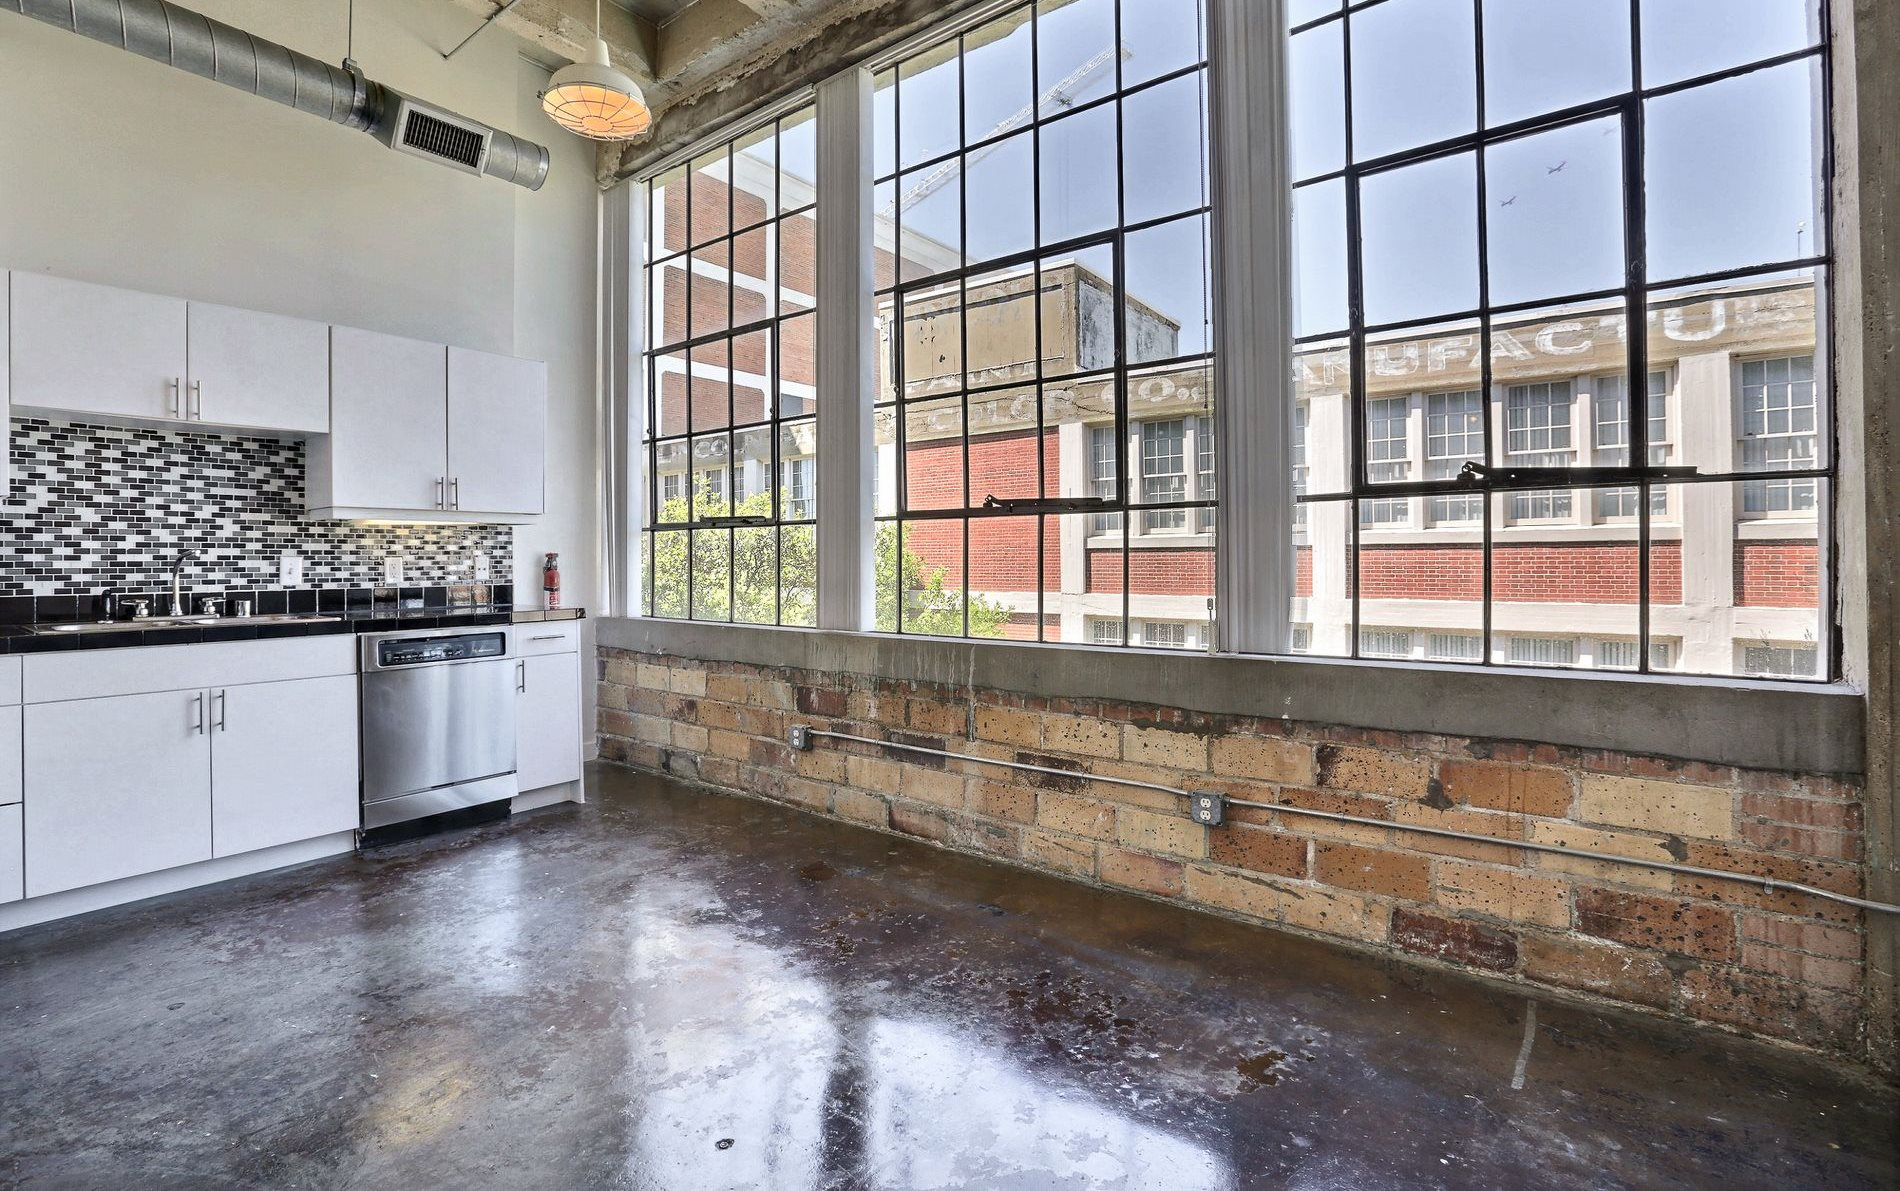 Dallas Lofts - Here is your Dallas loft guide! Deep Ellum Lofts, Downtown Dallas Lofts, Uptown Lofts, Bishop Arts Lofts, and more!